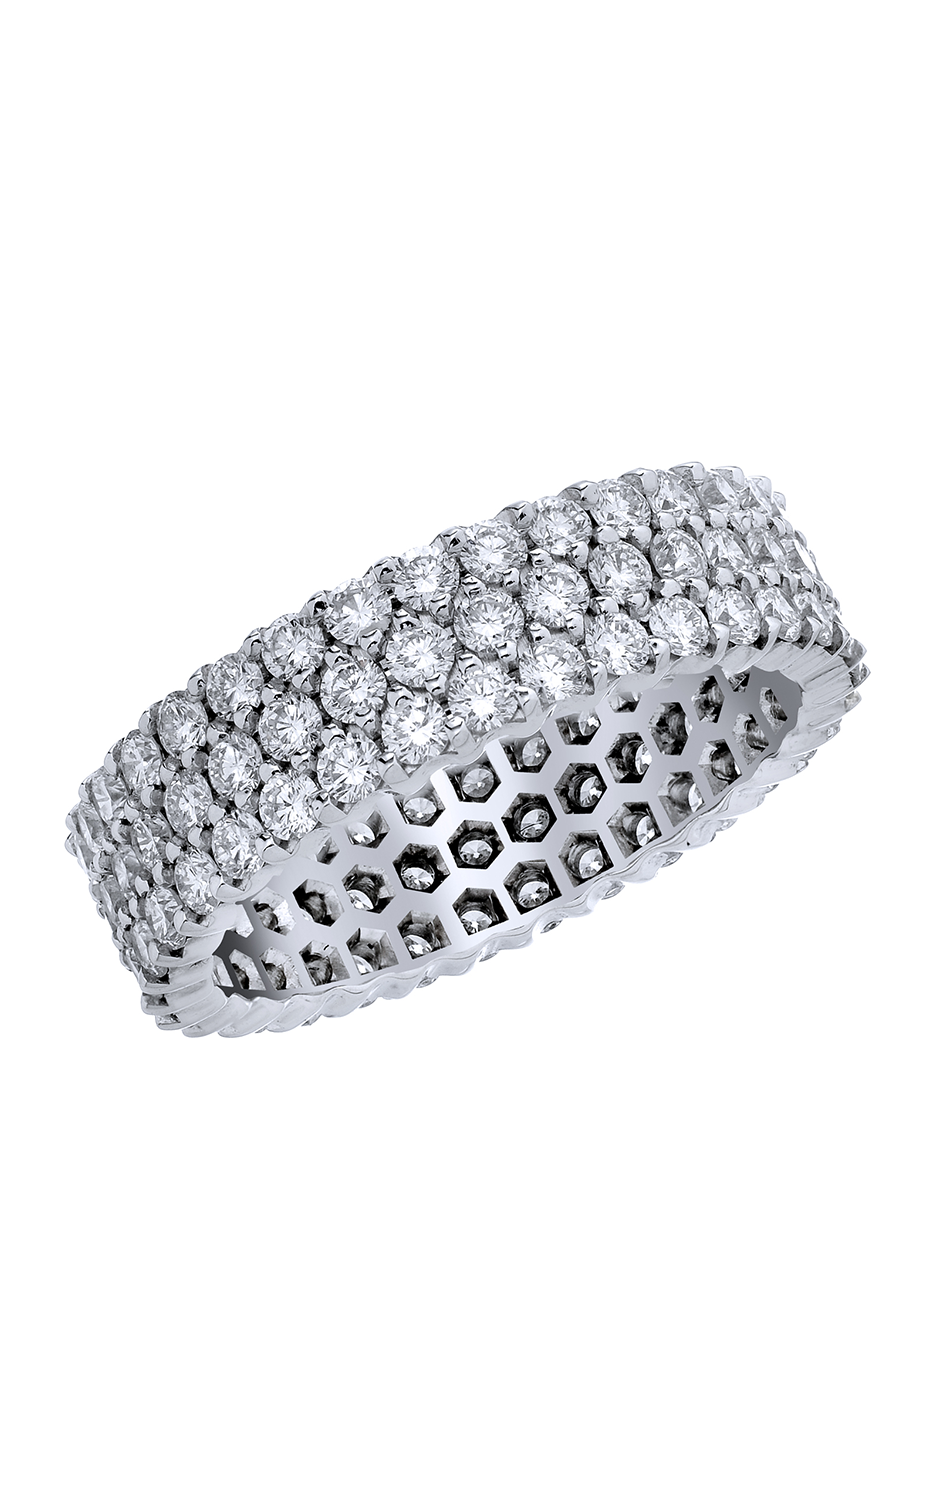 Vibhor Wedding Bands R0361 product image